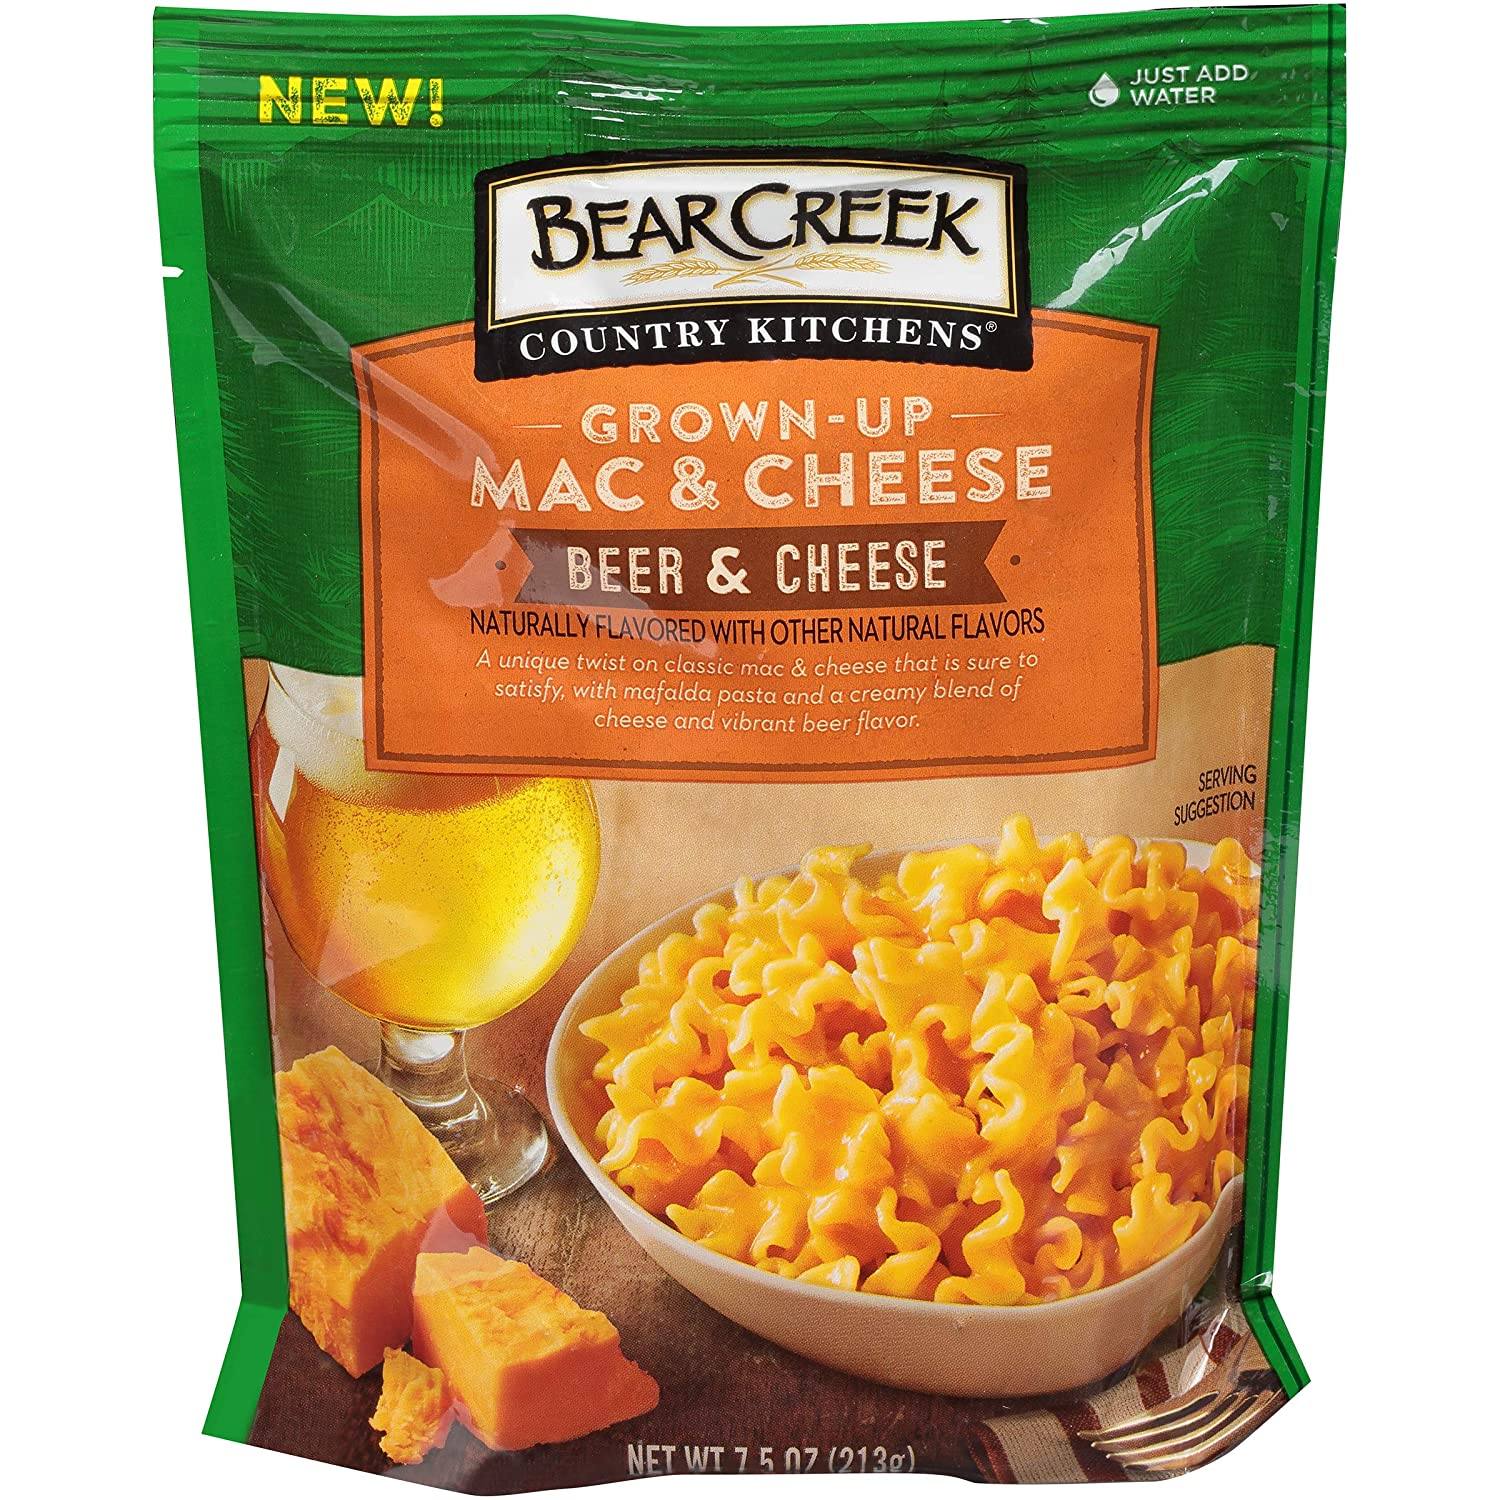 Bear Creek Grown-Up Mac & Cheese, Beer & Cheese, 7.5 Ounce (Pack of 6)